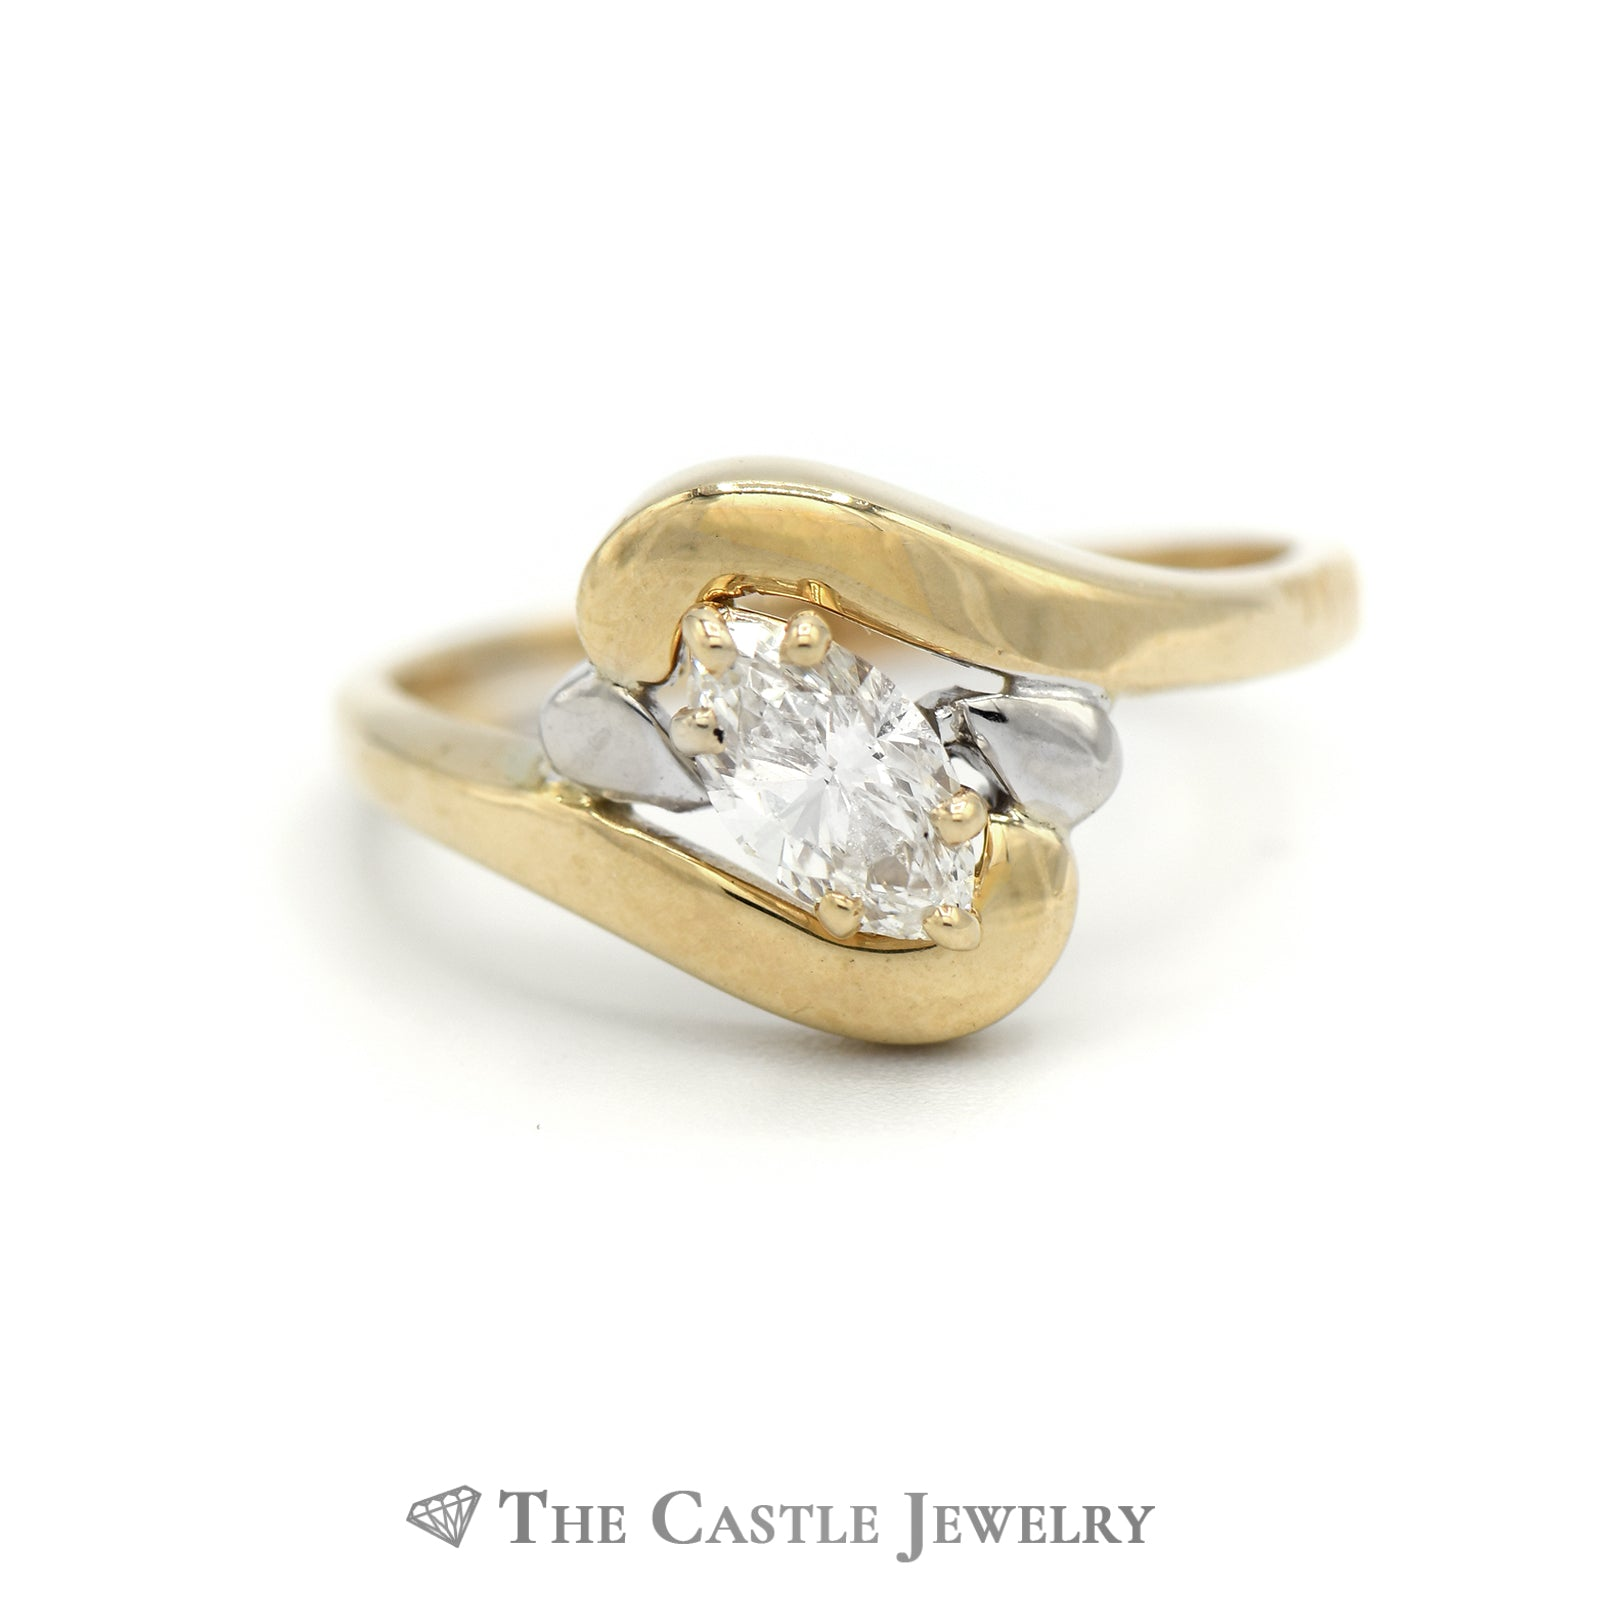 Charming Marquise Diamond Solitaire Ring in Yellow Gold